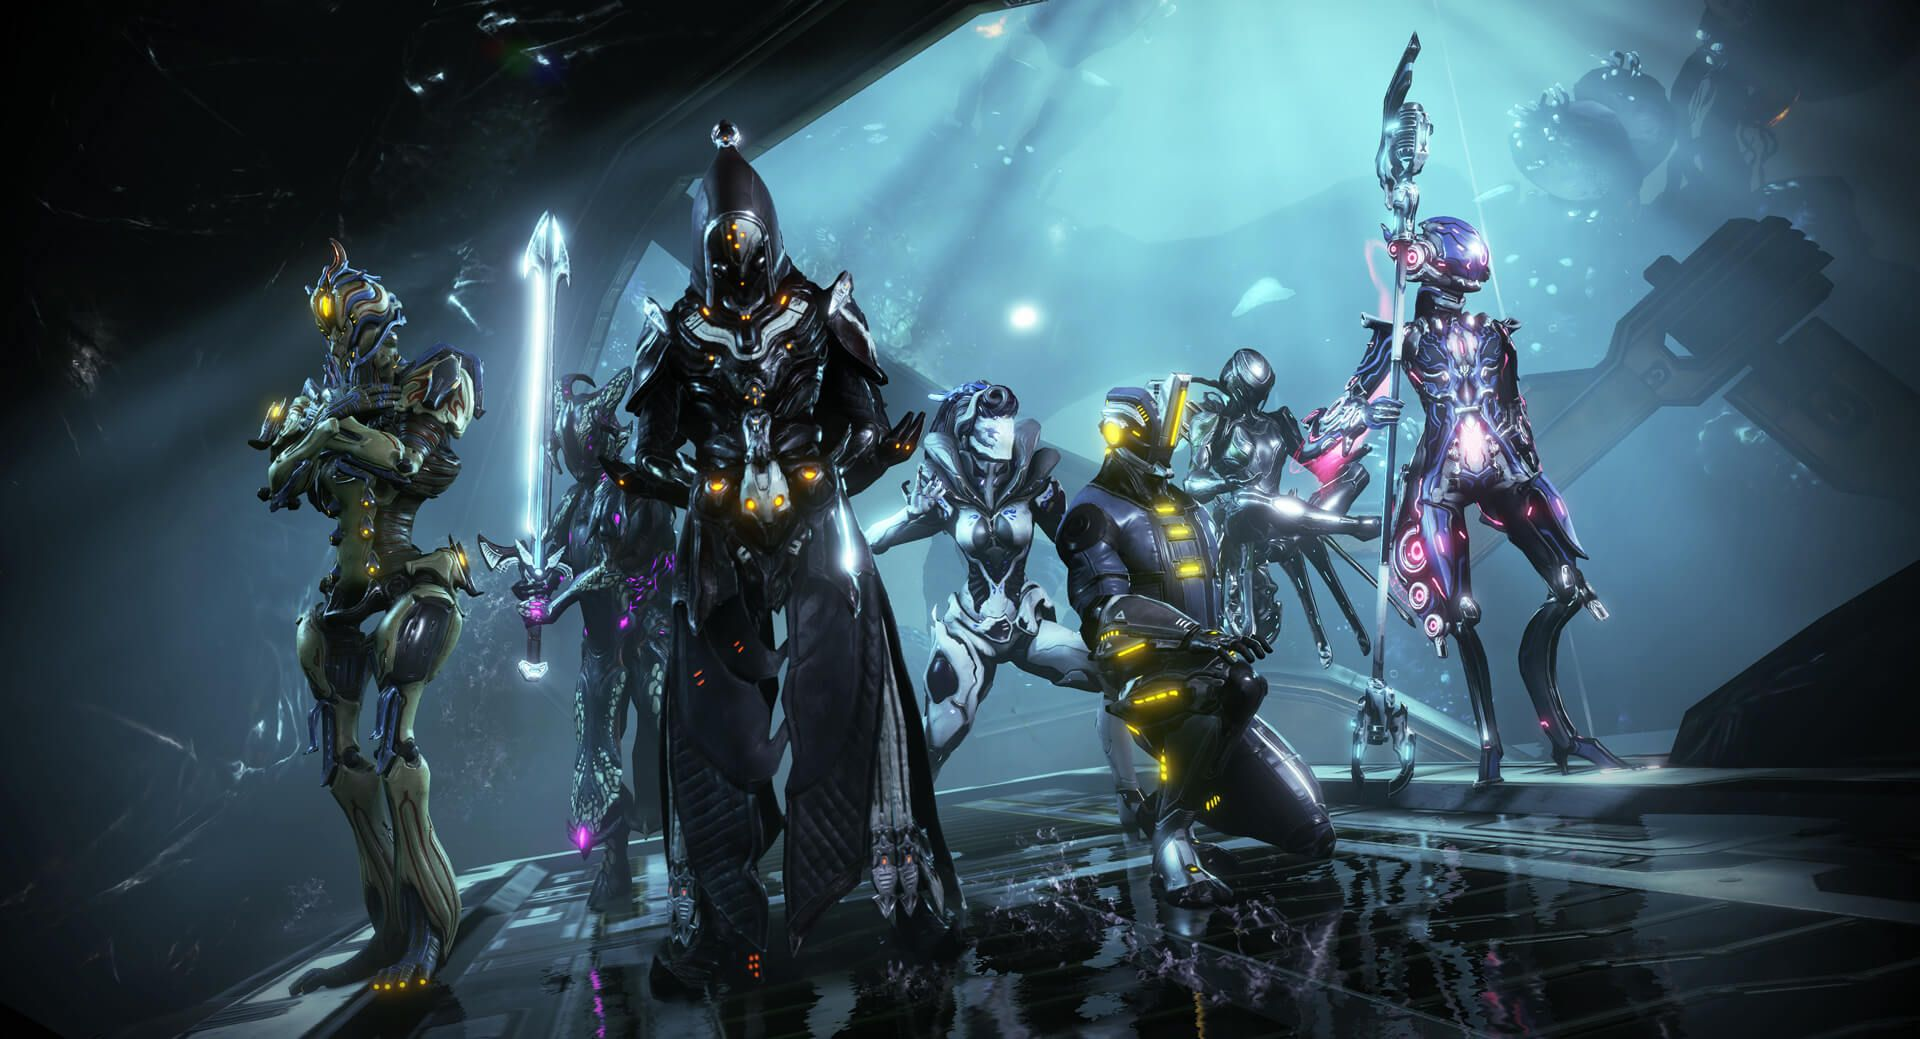 Warframe 2018 starter guide how to start your galactic quest warframe 2018 starter guide how to start your galactic quest malvernweather Image collections